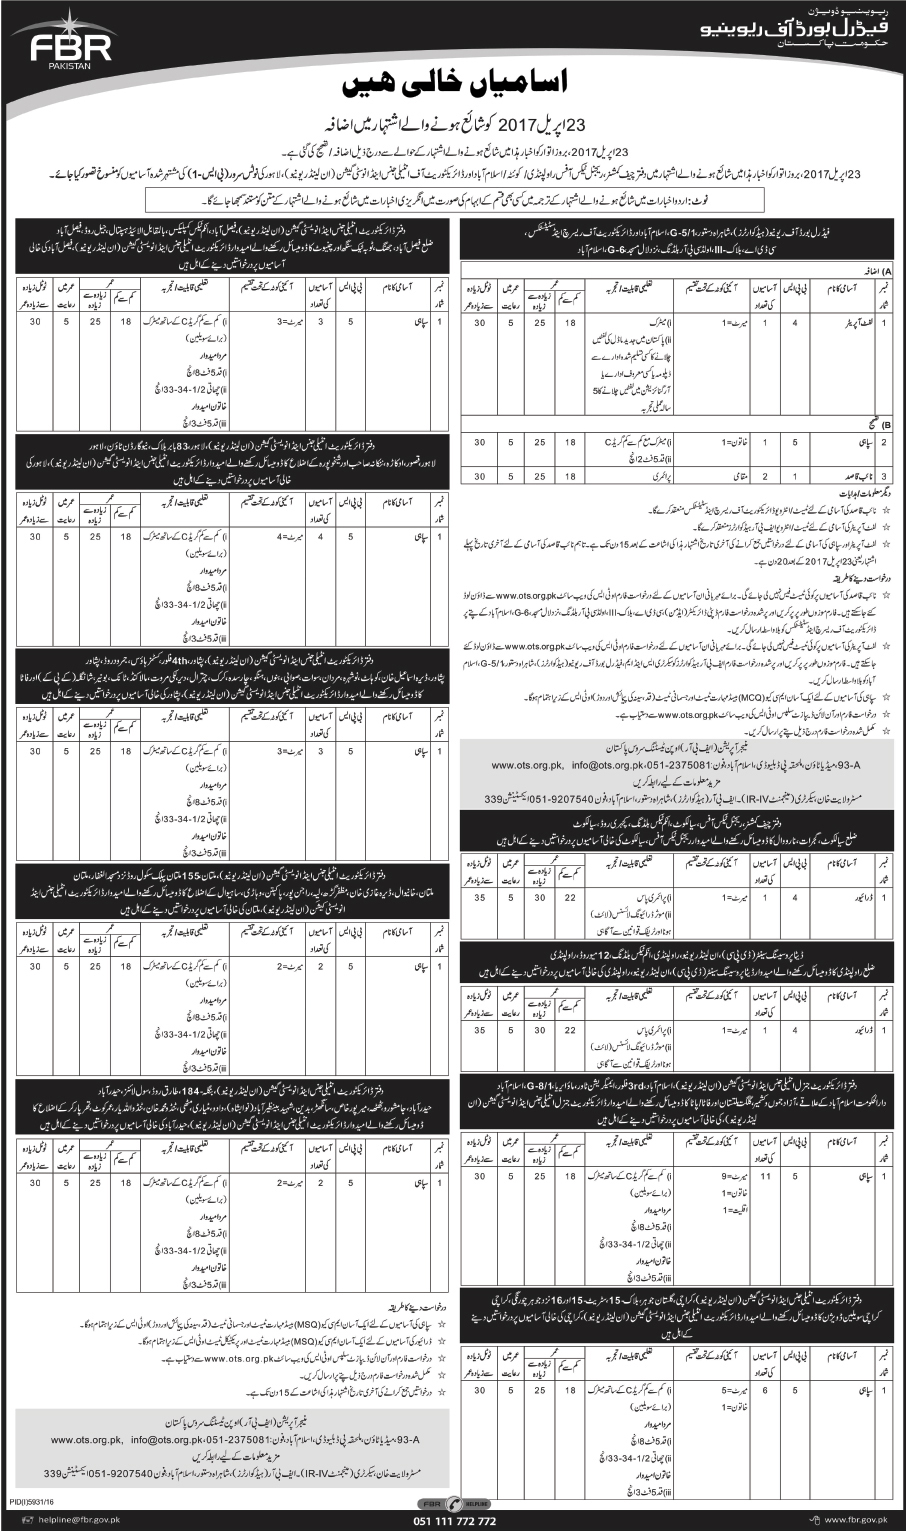 federal board of revenue fbr government of pakistan jobs May 2017